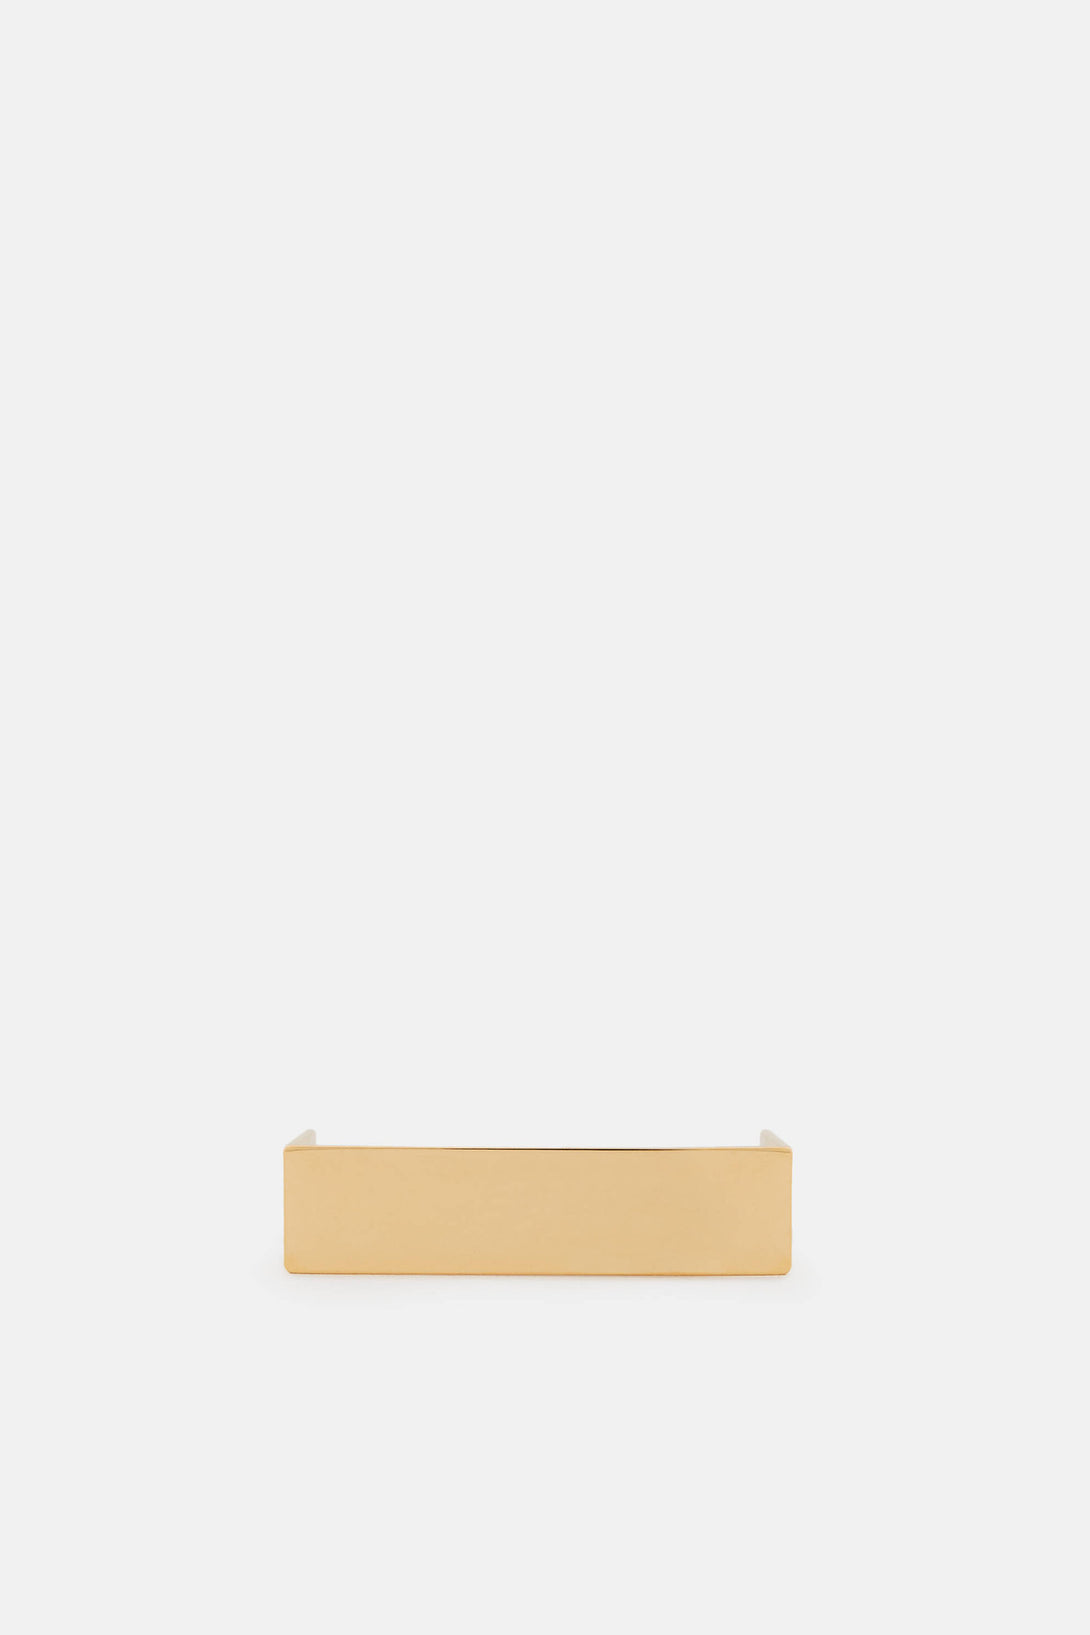 Barrette 041 - Gold